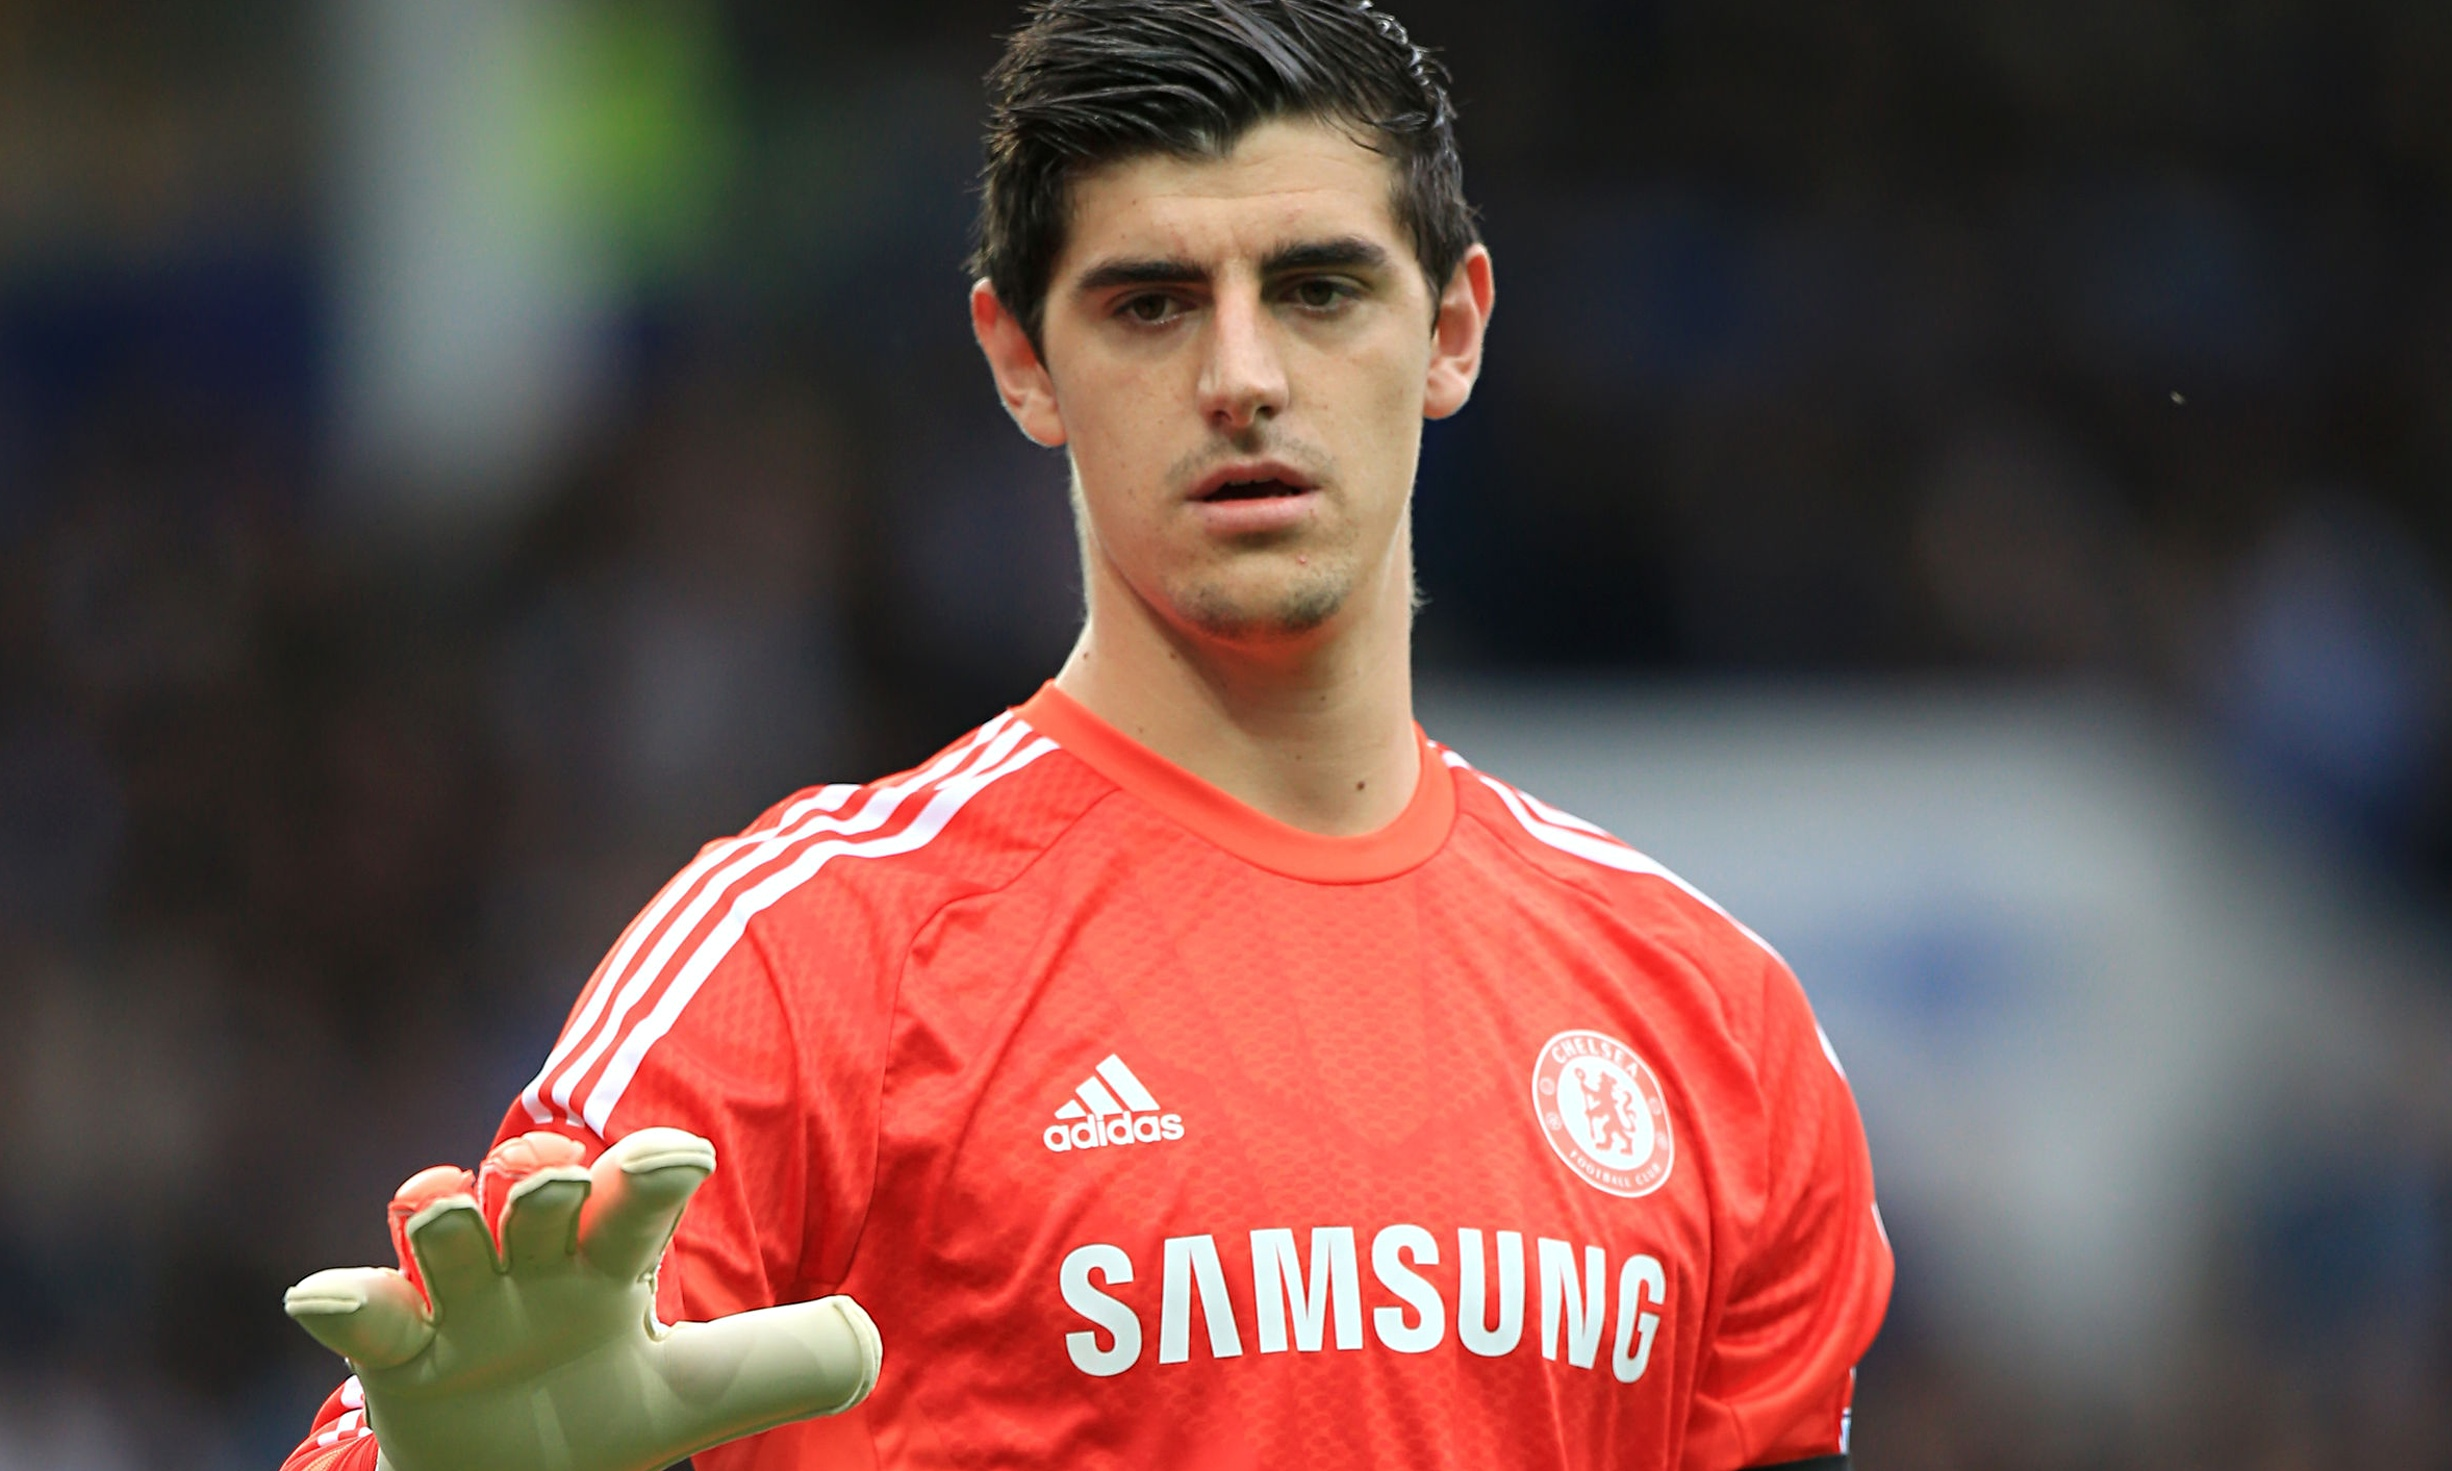 Thibaut Courtois earned a  million dollar salary - leaving the net worth at 4 million in 2018